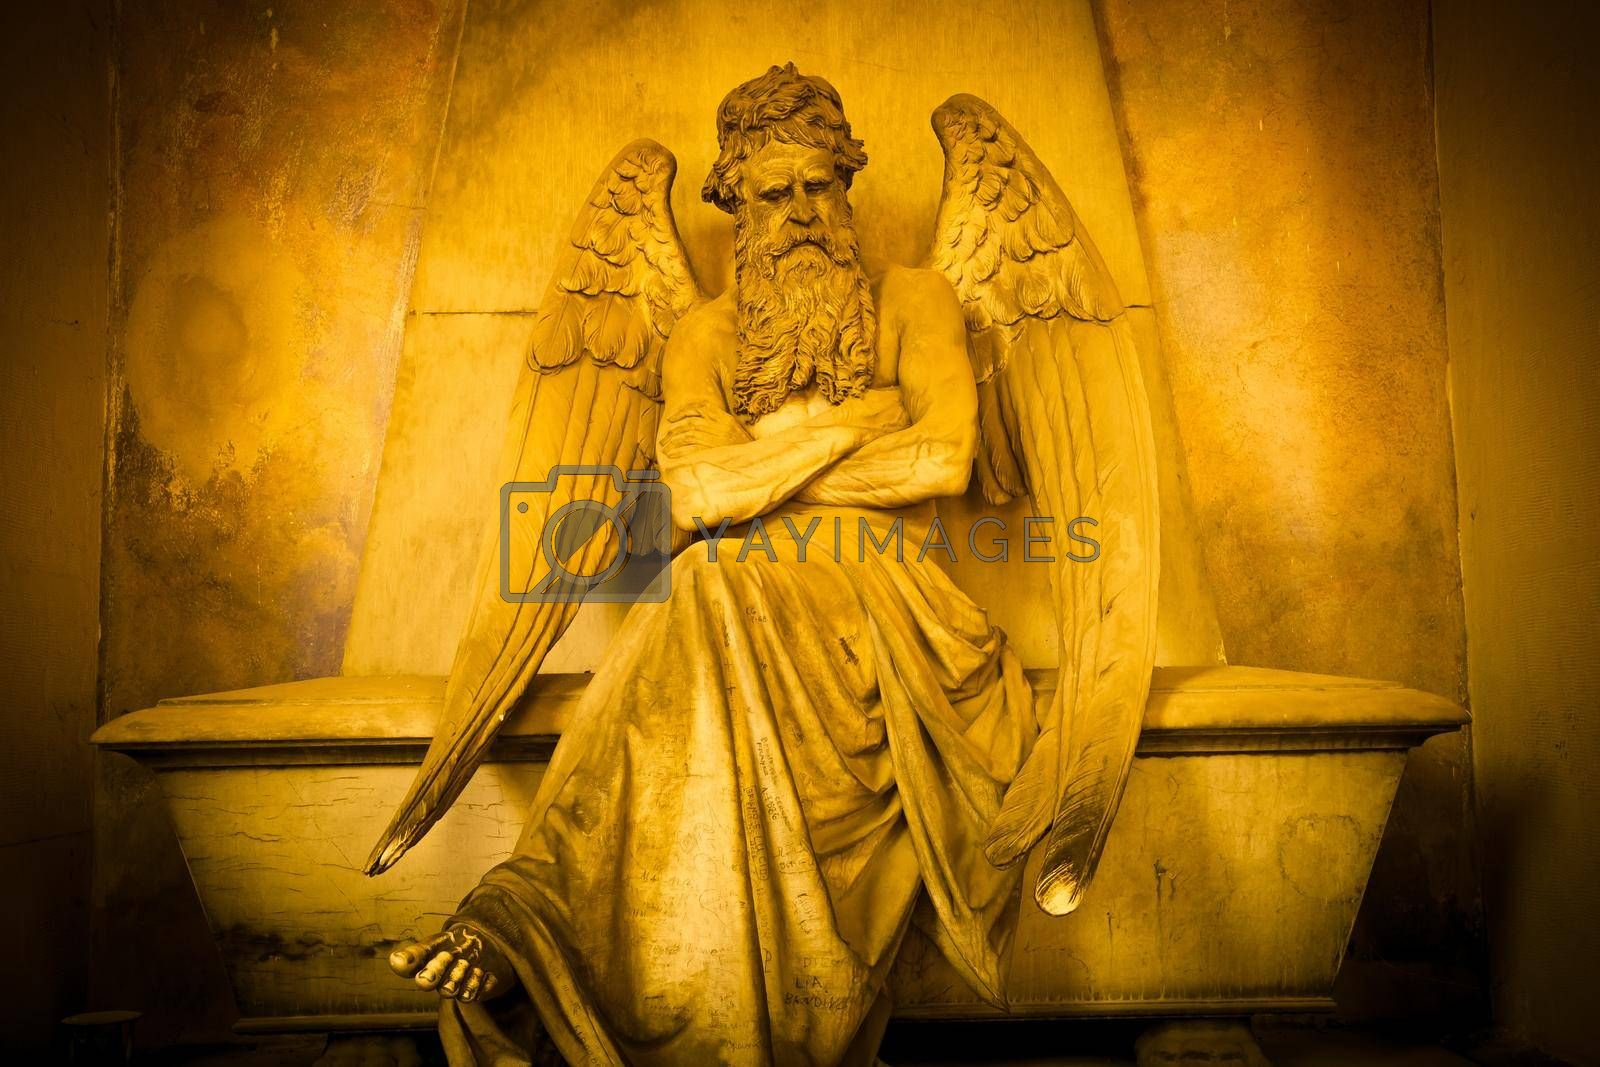 Royalty free image of Statue of angel on an old tomb located in Genoa cemetery - Italy by Perseomedusa